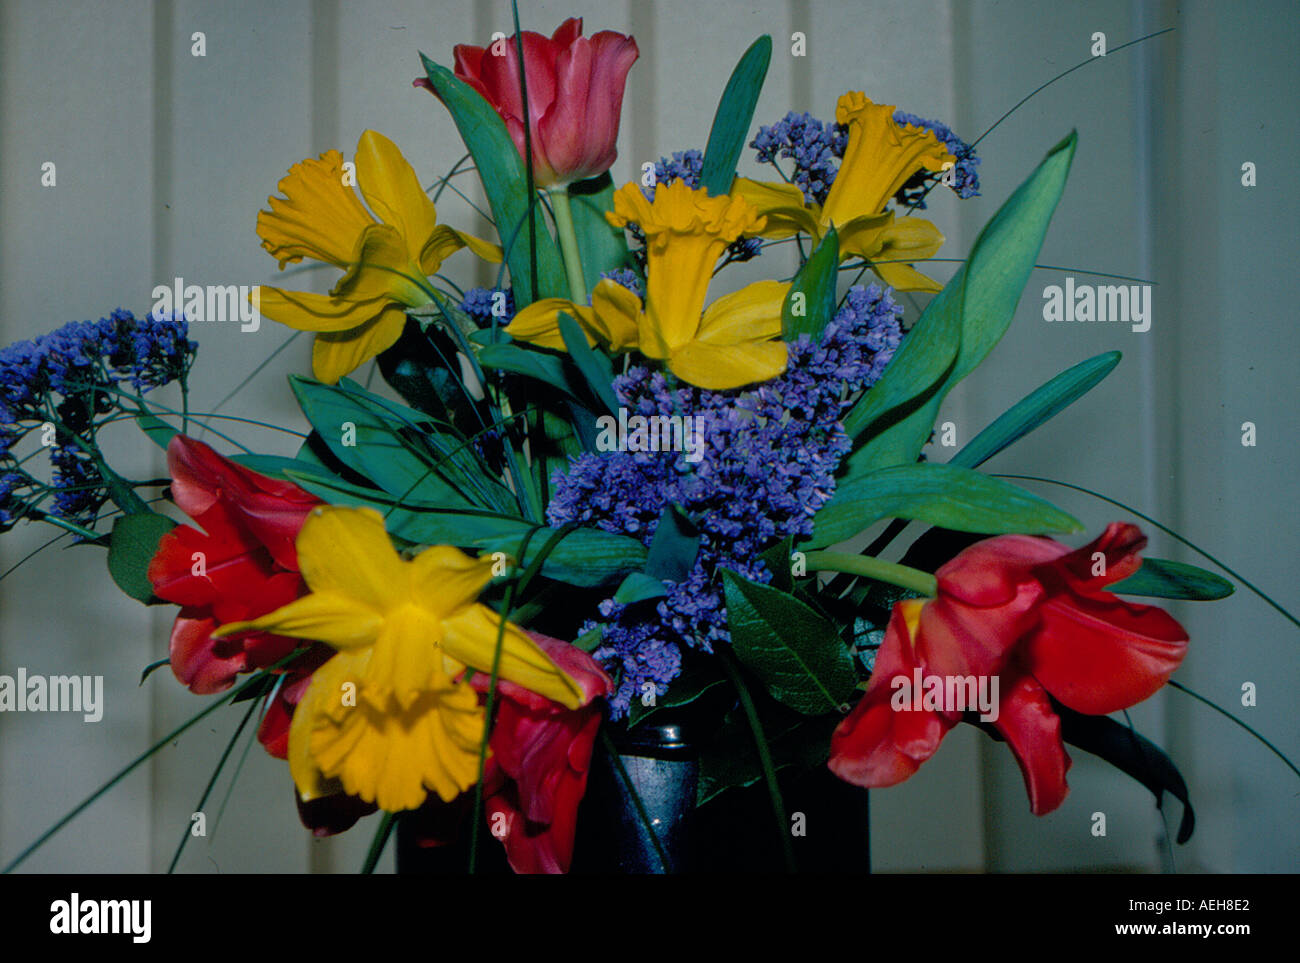 bunch of tulips. Photo by Willy Matheisl - Stock Image